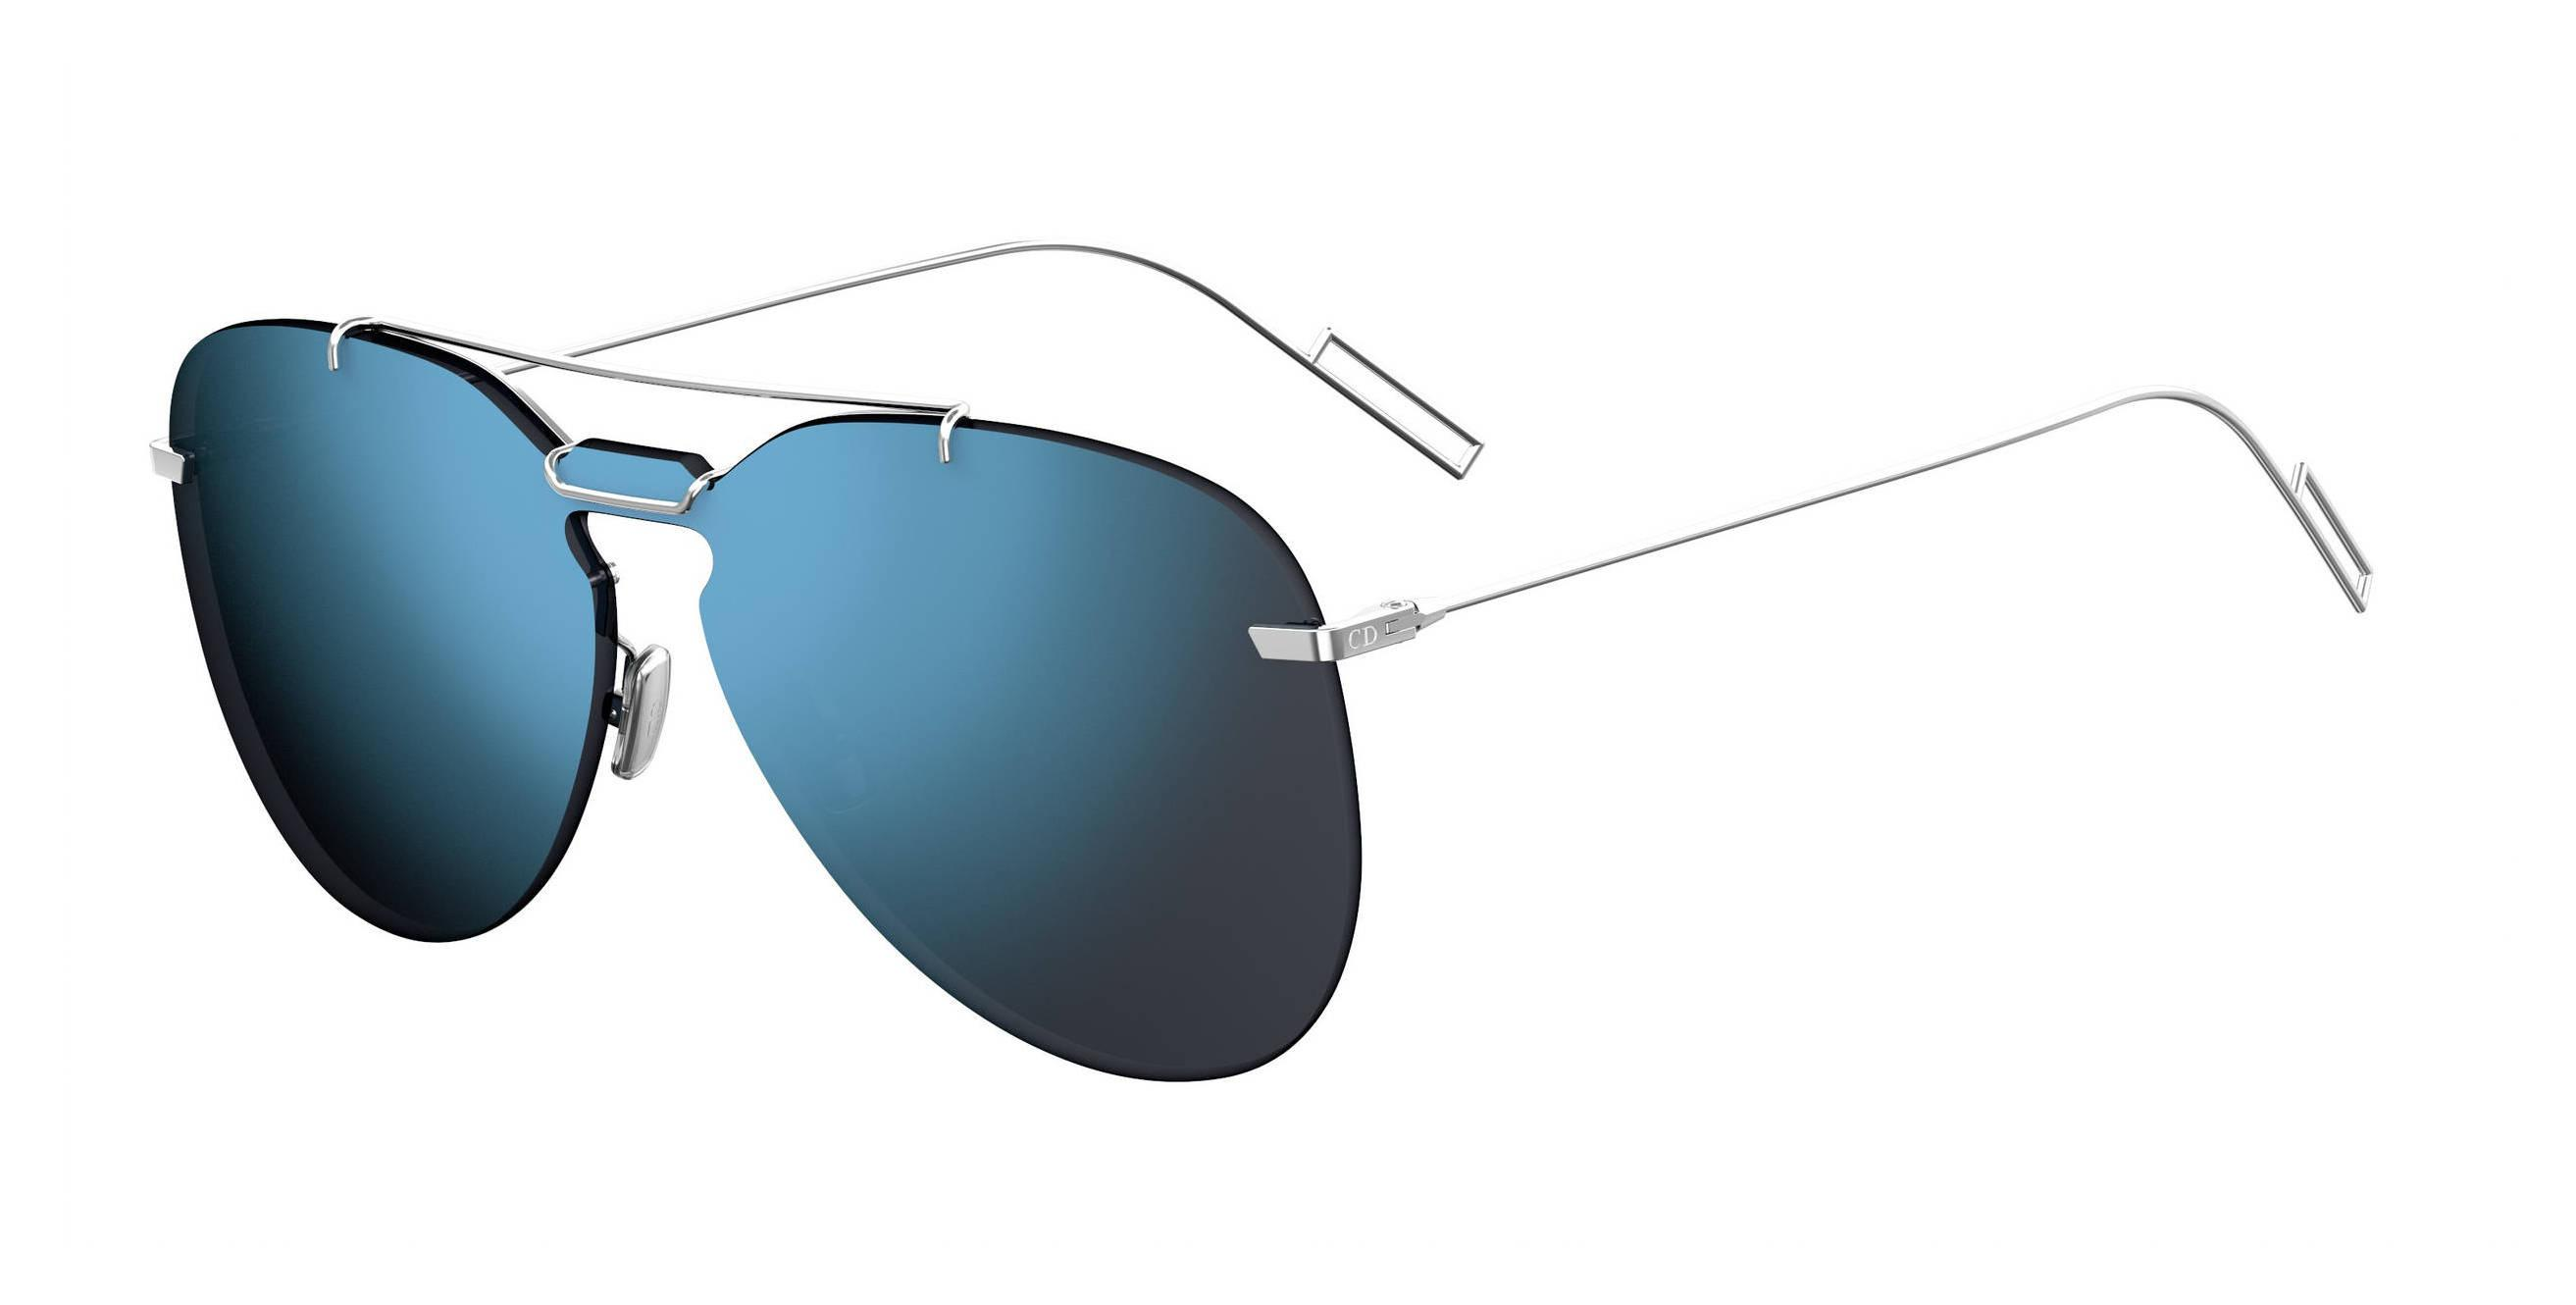 c0ad92493 Dior Homme 0222s Aviator Sunglasses in Blue for Men - Lyst